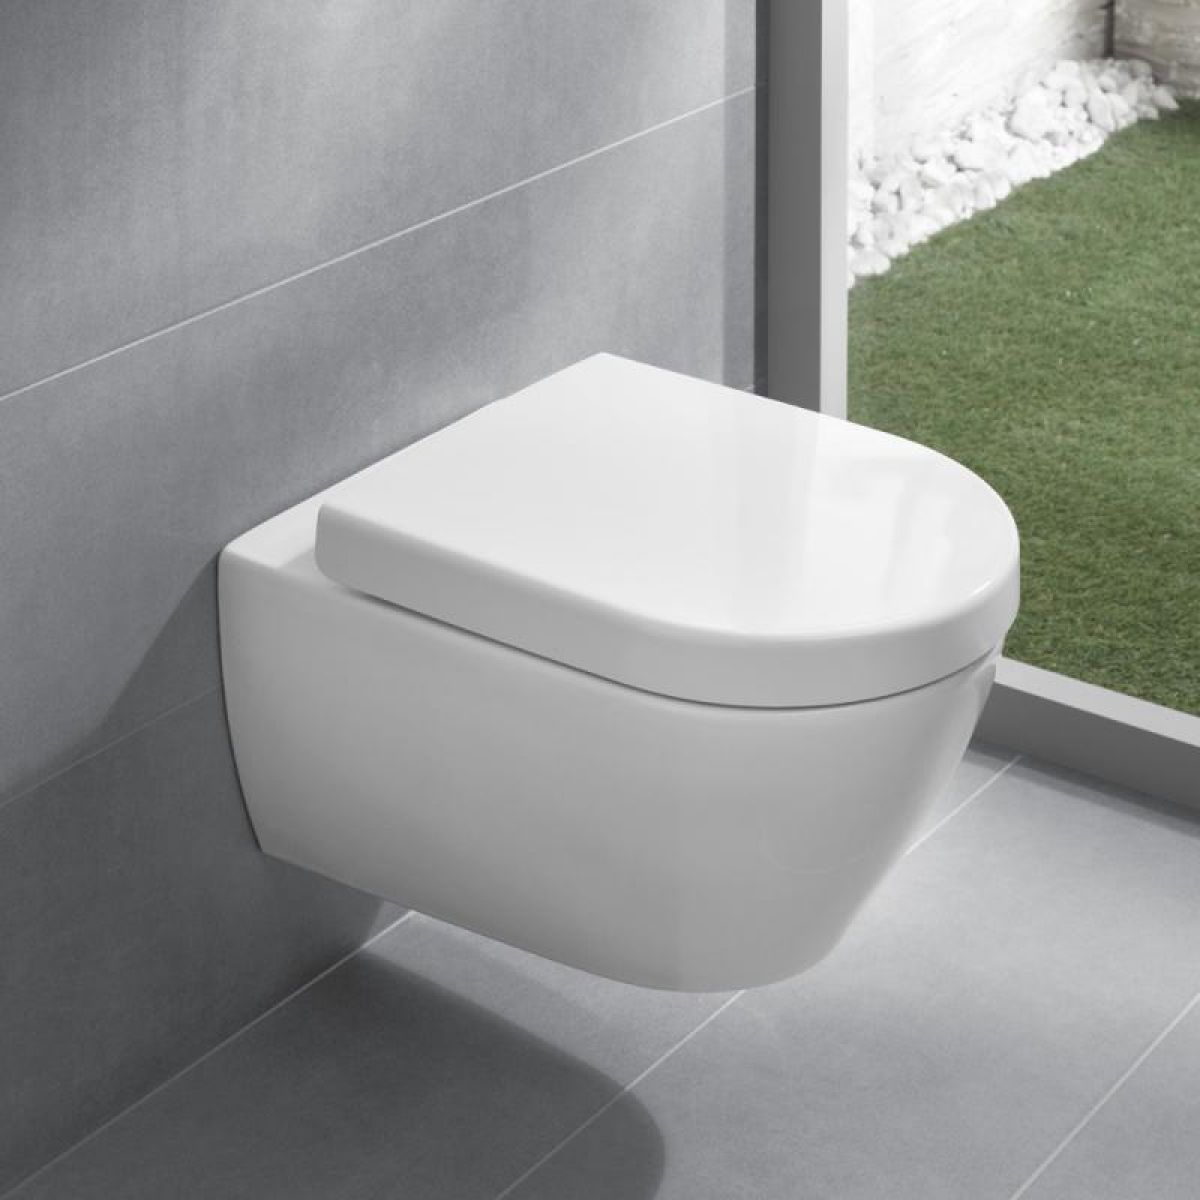 Villeroy & Boch Subway 2.0 Wall Hung Toilet